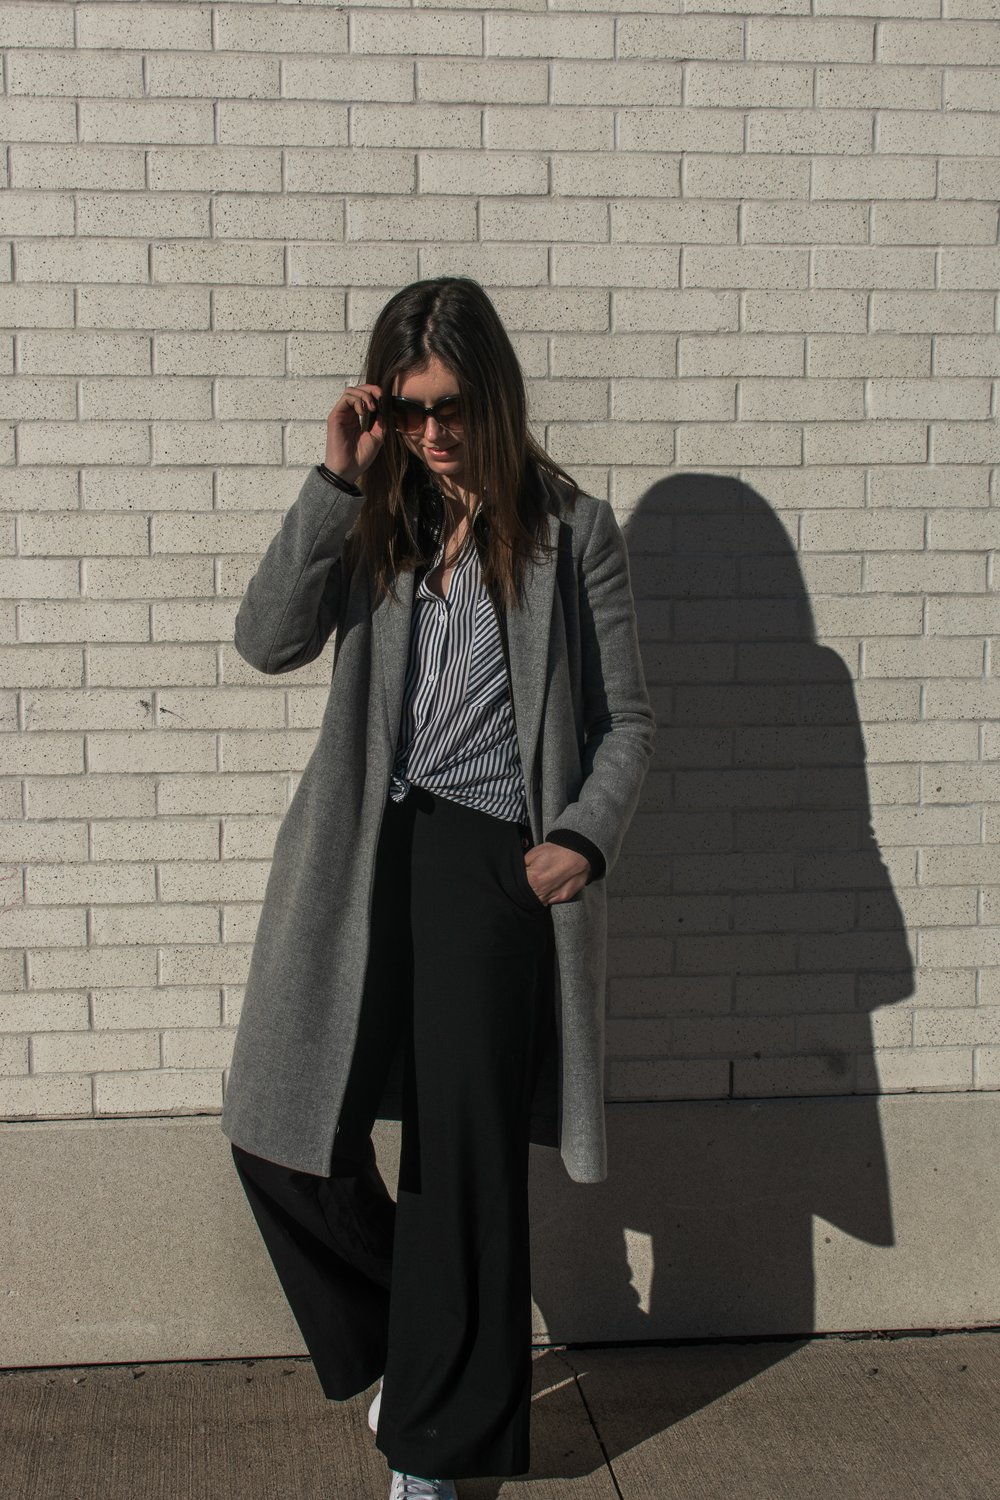 Menswear Inspired3 - styleapotheca